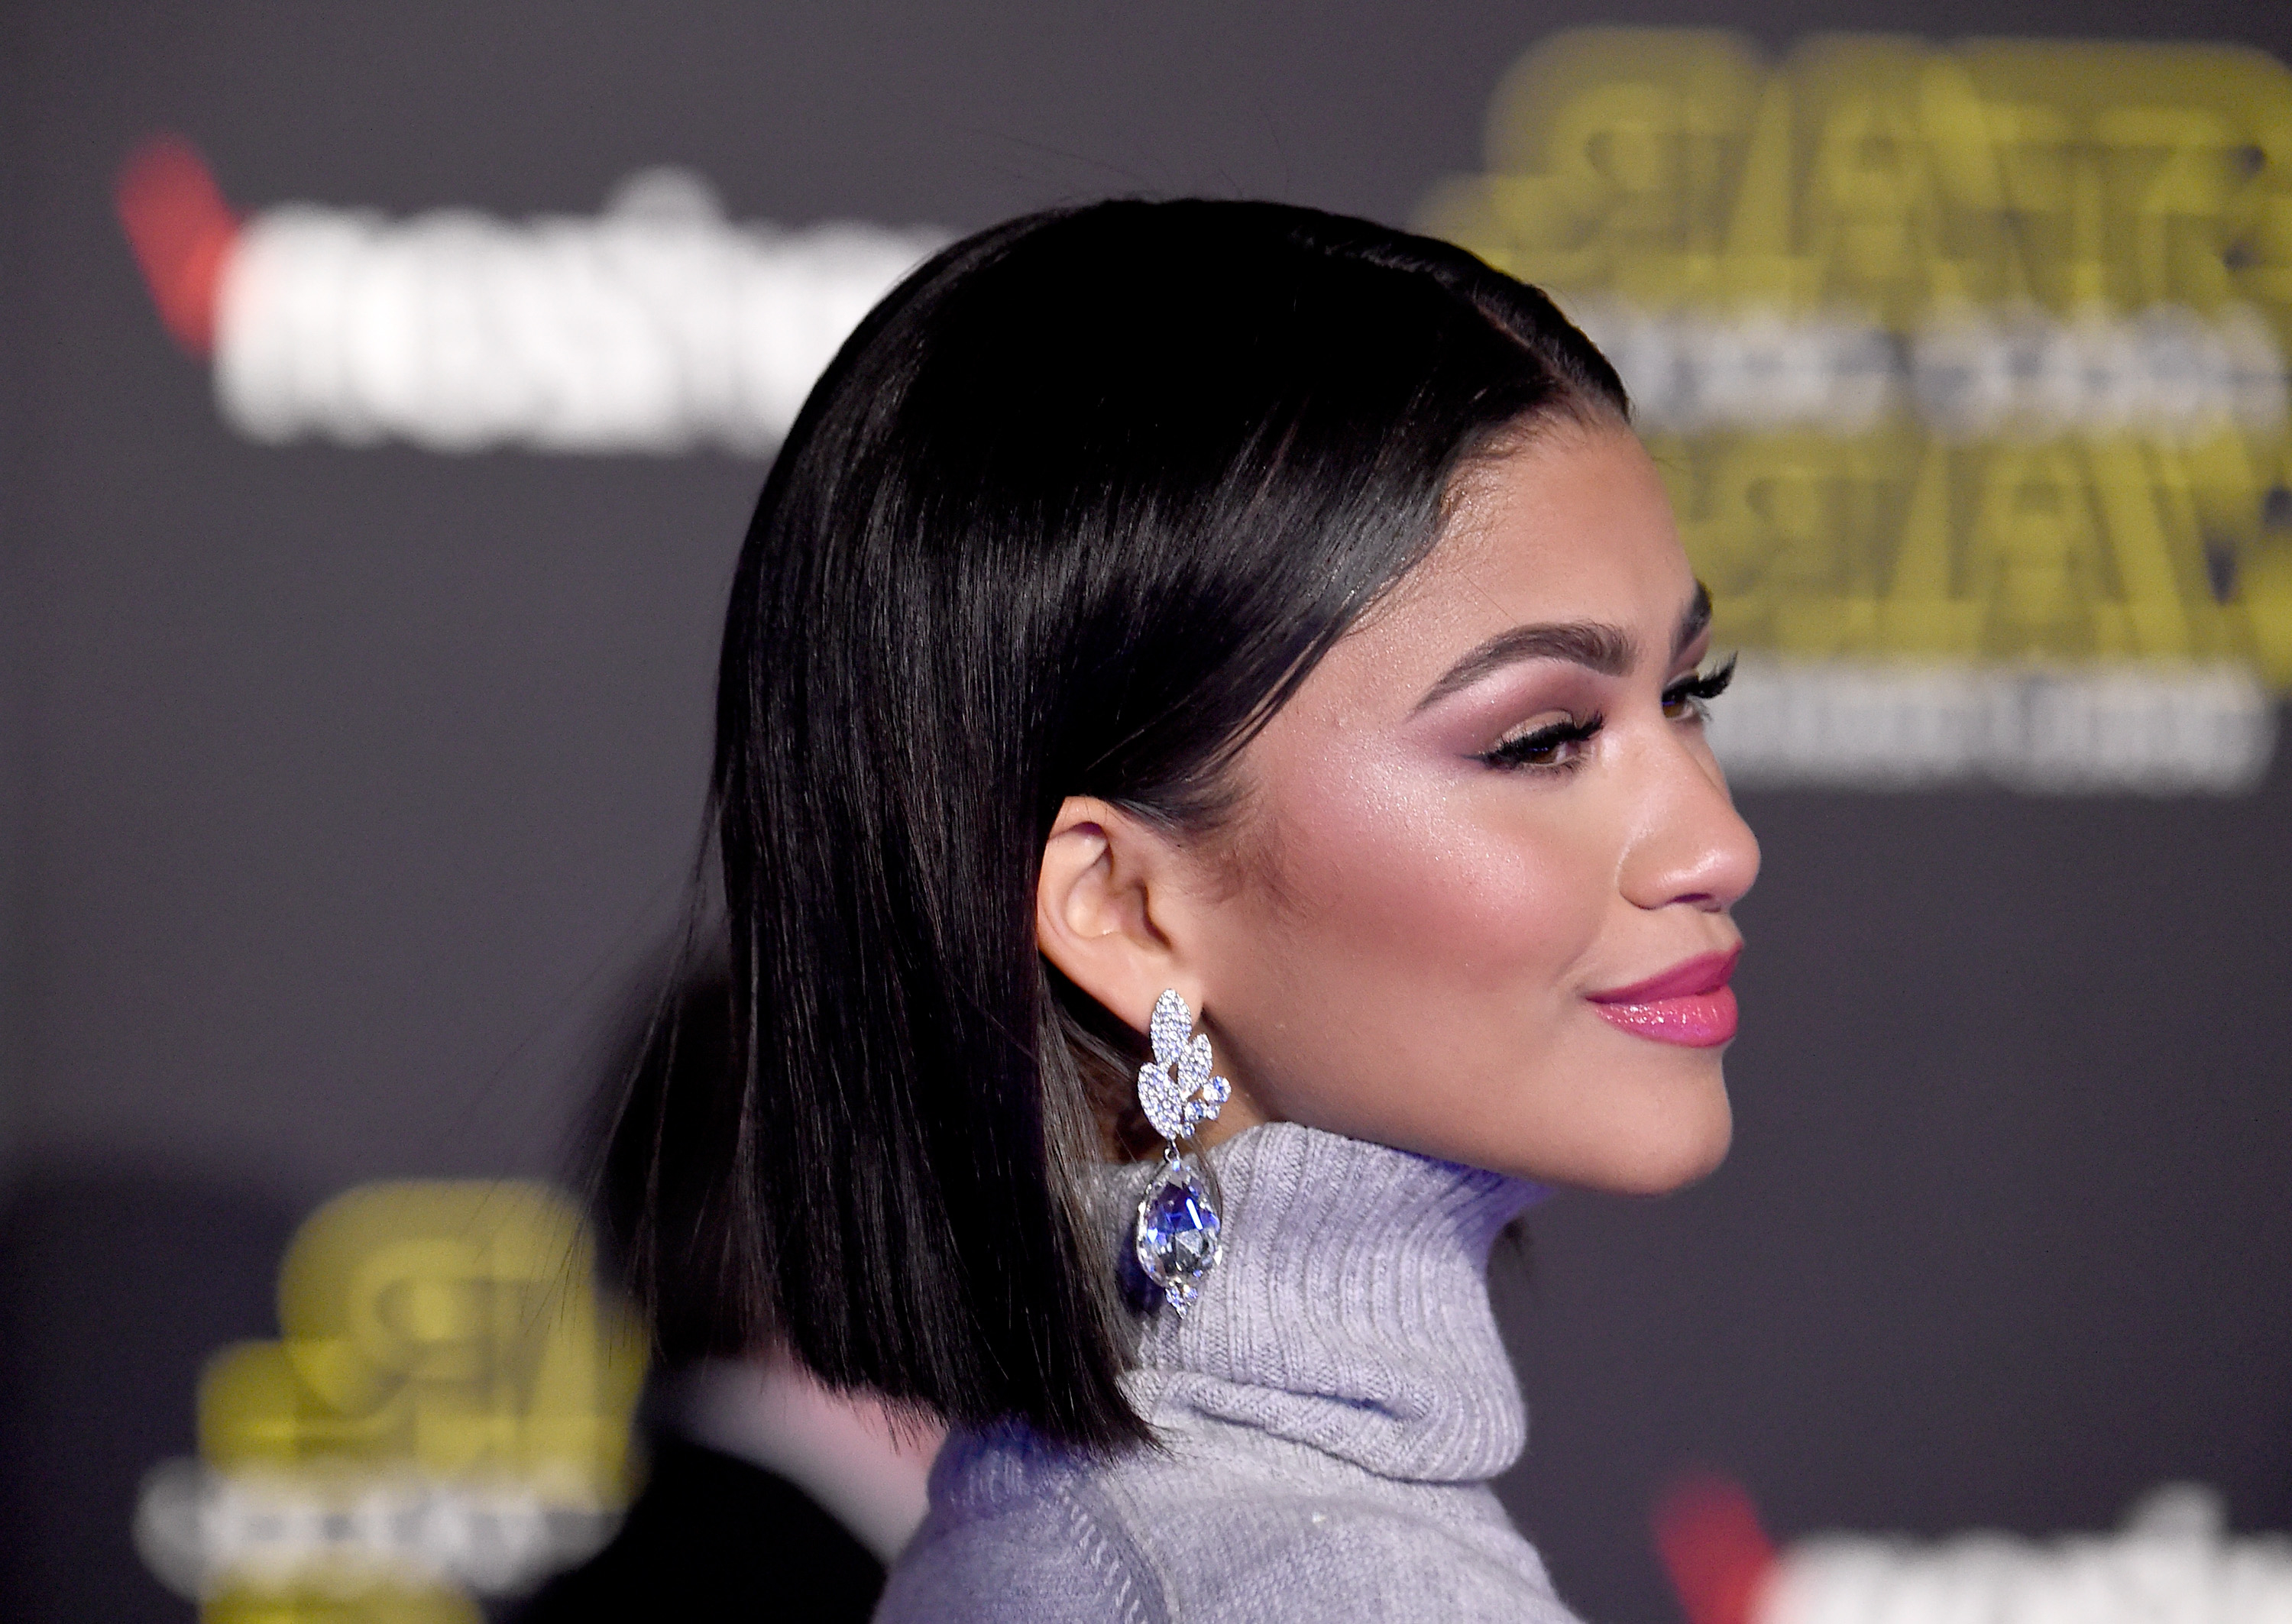 31 Female Celebs With Short Hair That'll Convince You To Make The In Cute Celebrity Short Haircuts (View 7 of 25)